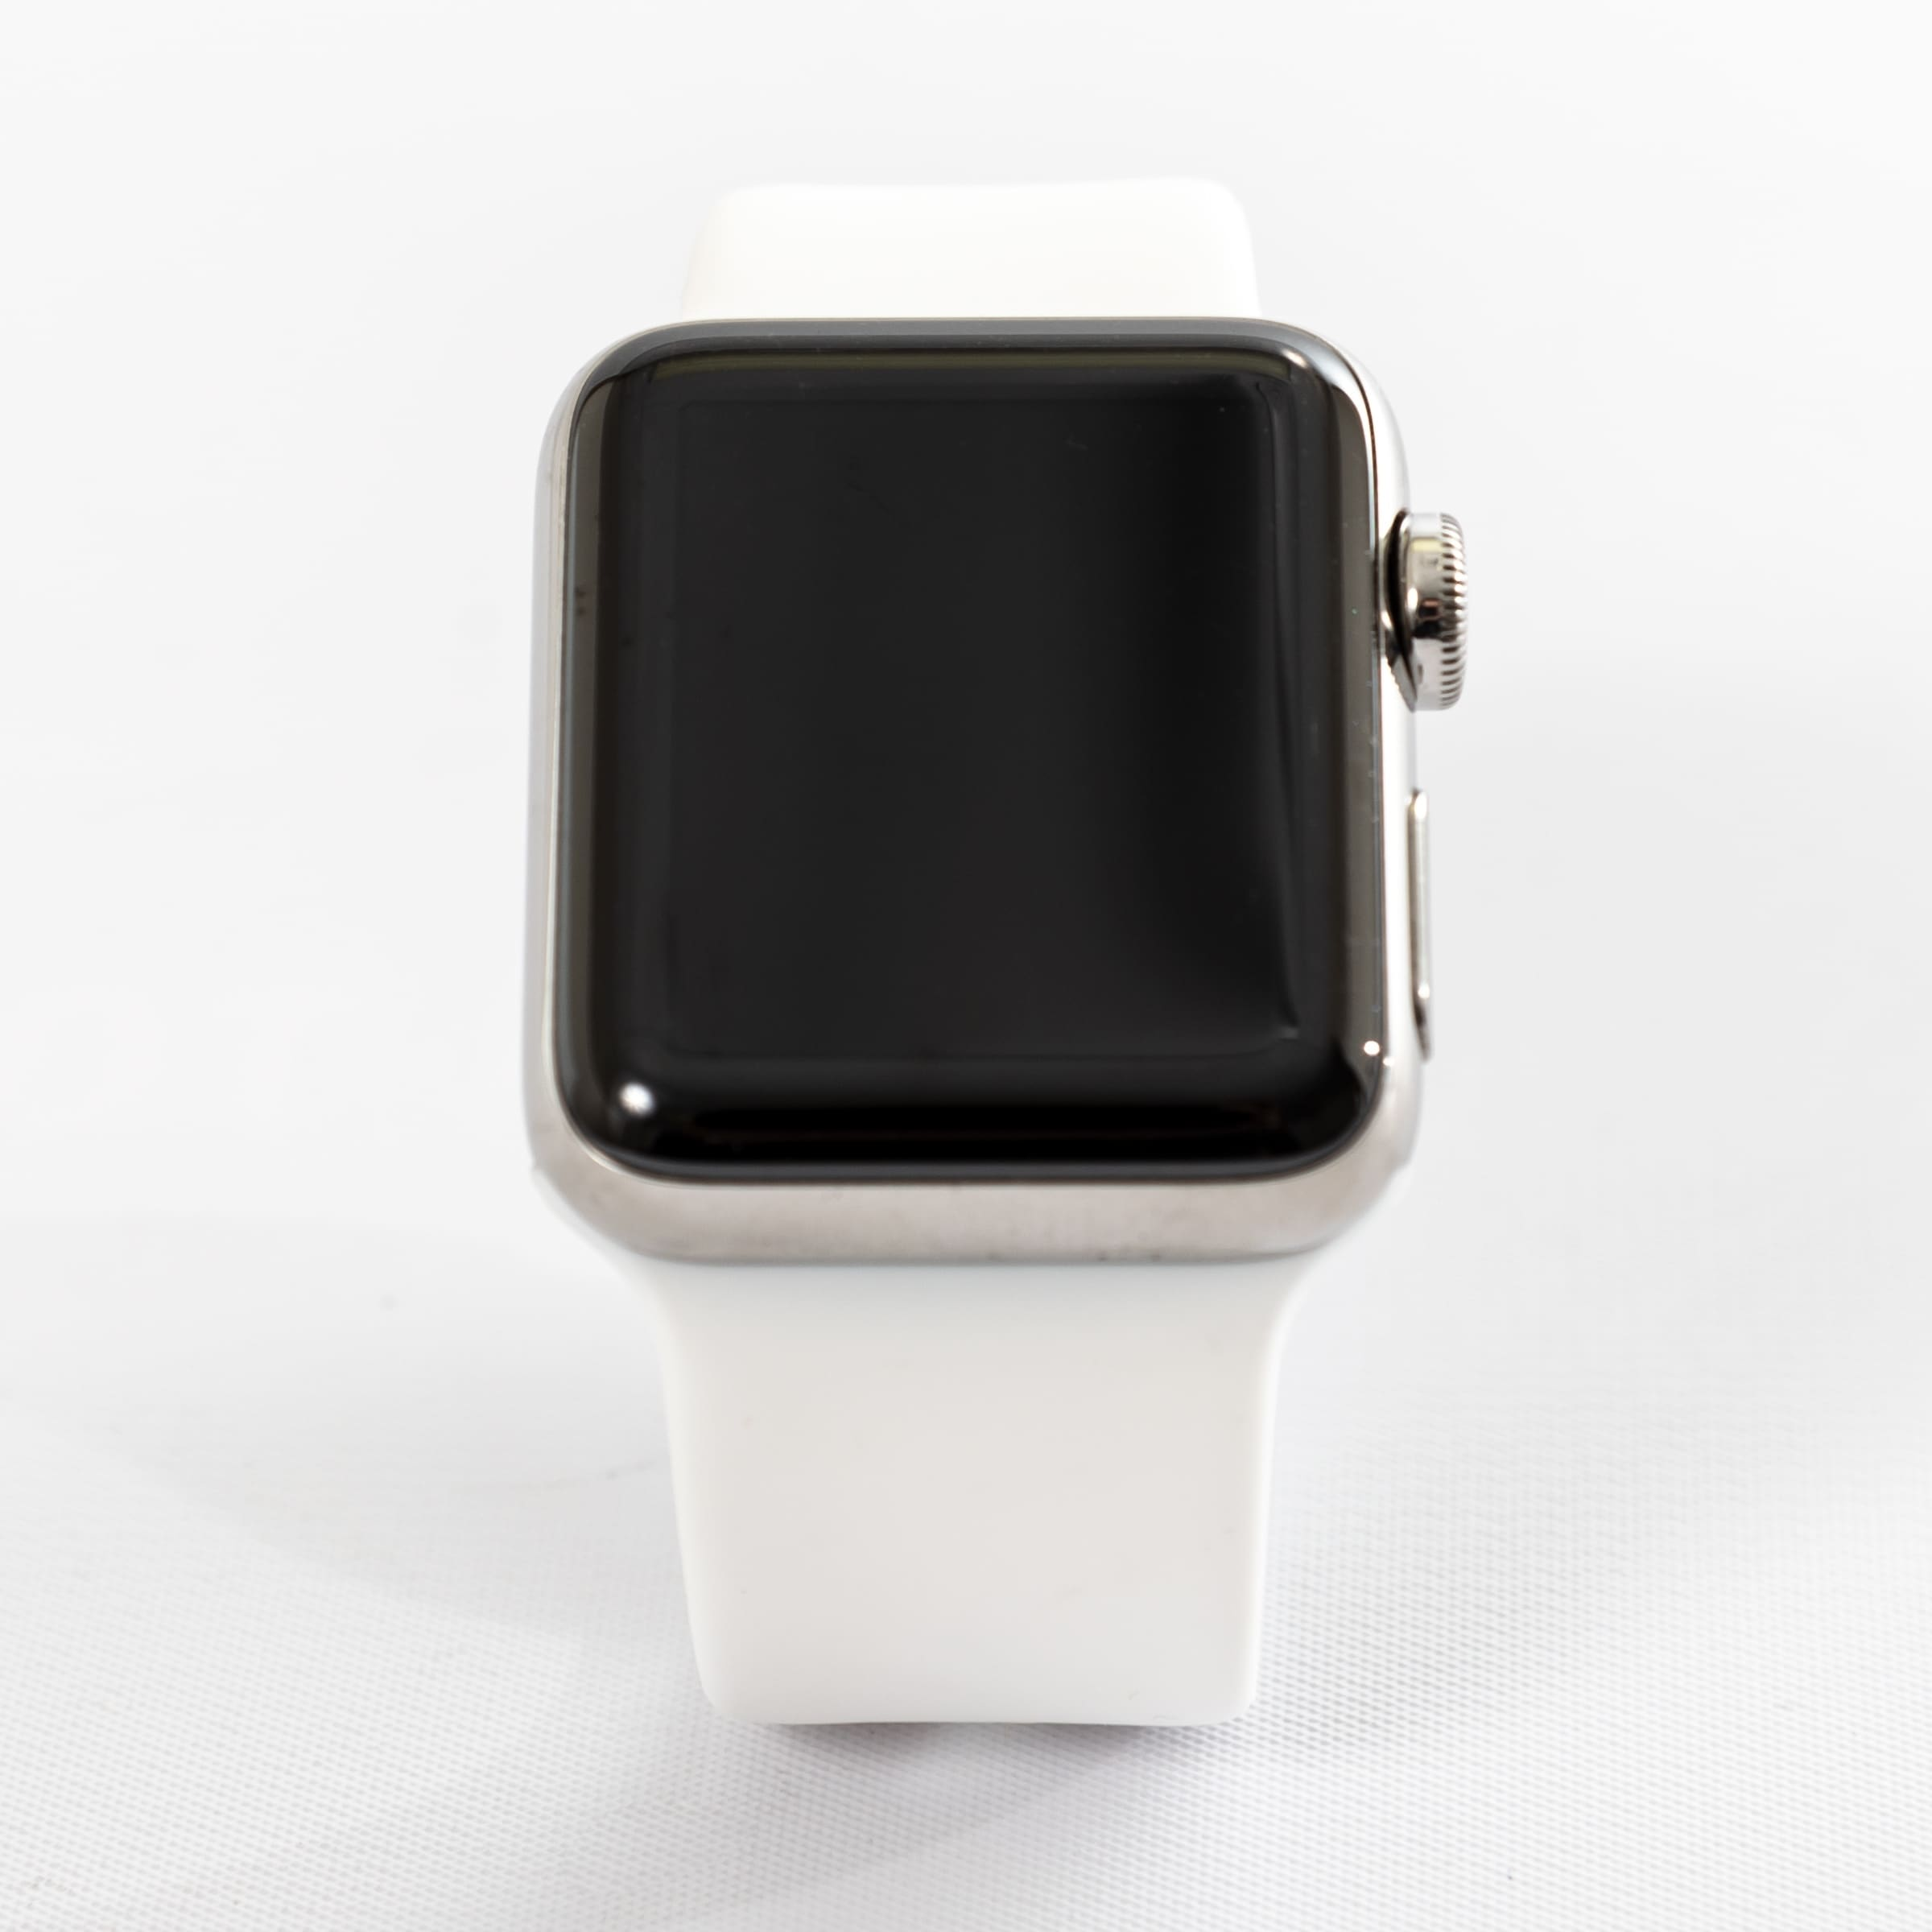 f7beb41d1bda Shop Apple Watch MQK82LL/A Series 3 42MM Stainless Steel Case/Soft White  Sport Band - Refurbished by Overstock - Free Shipping Today - Overstock -  27300120